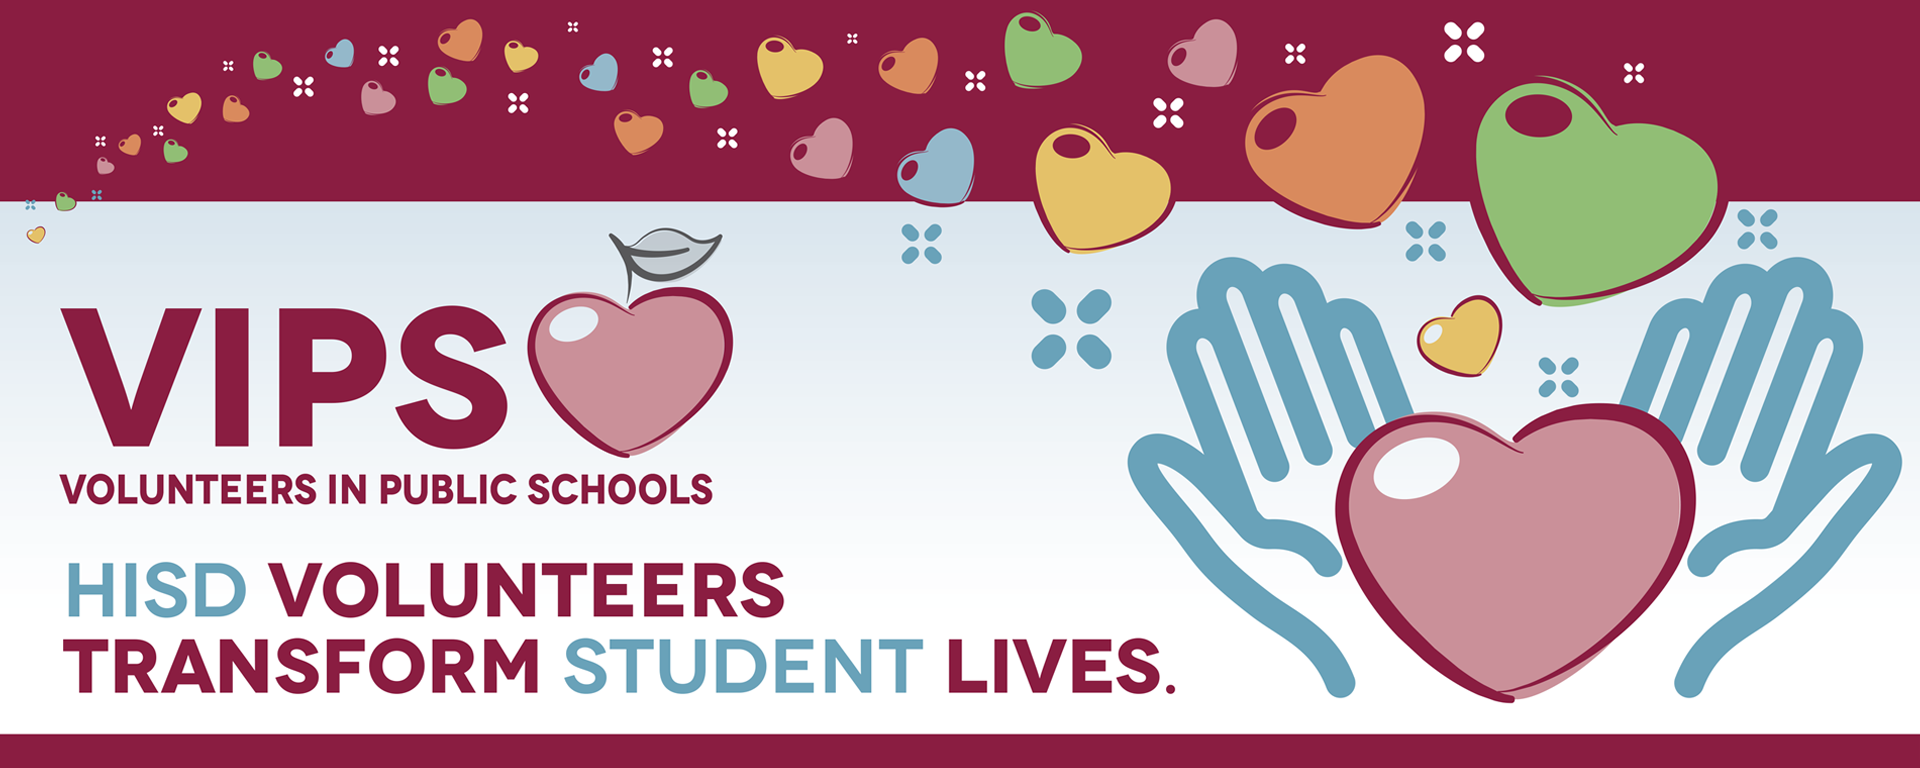 HISD volunteers transform student lives